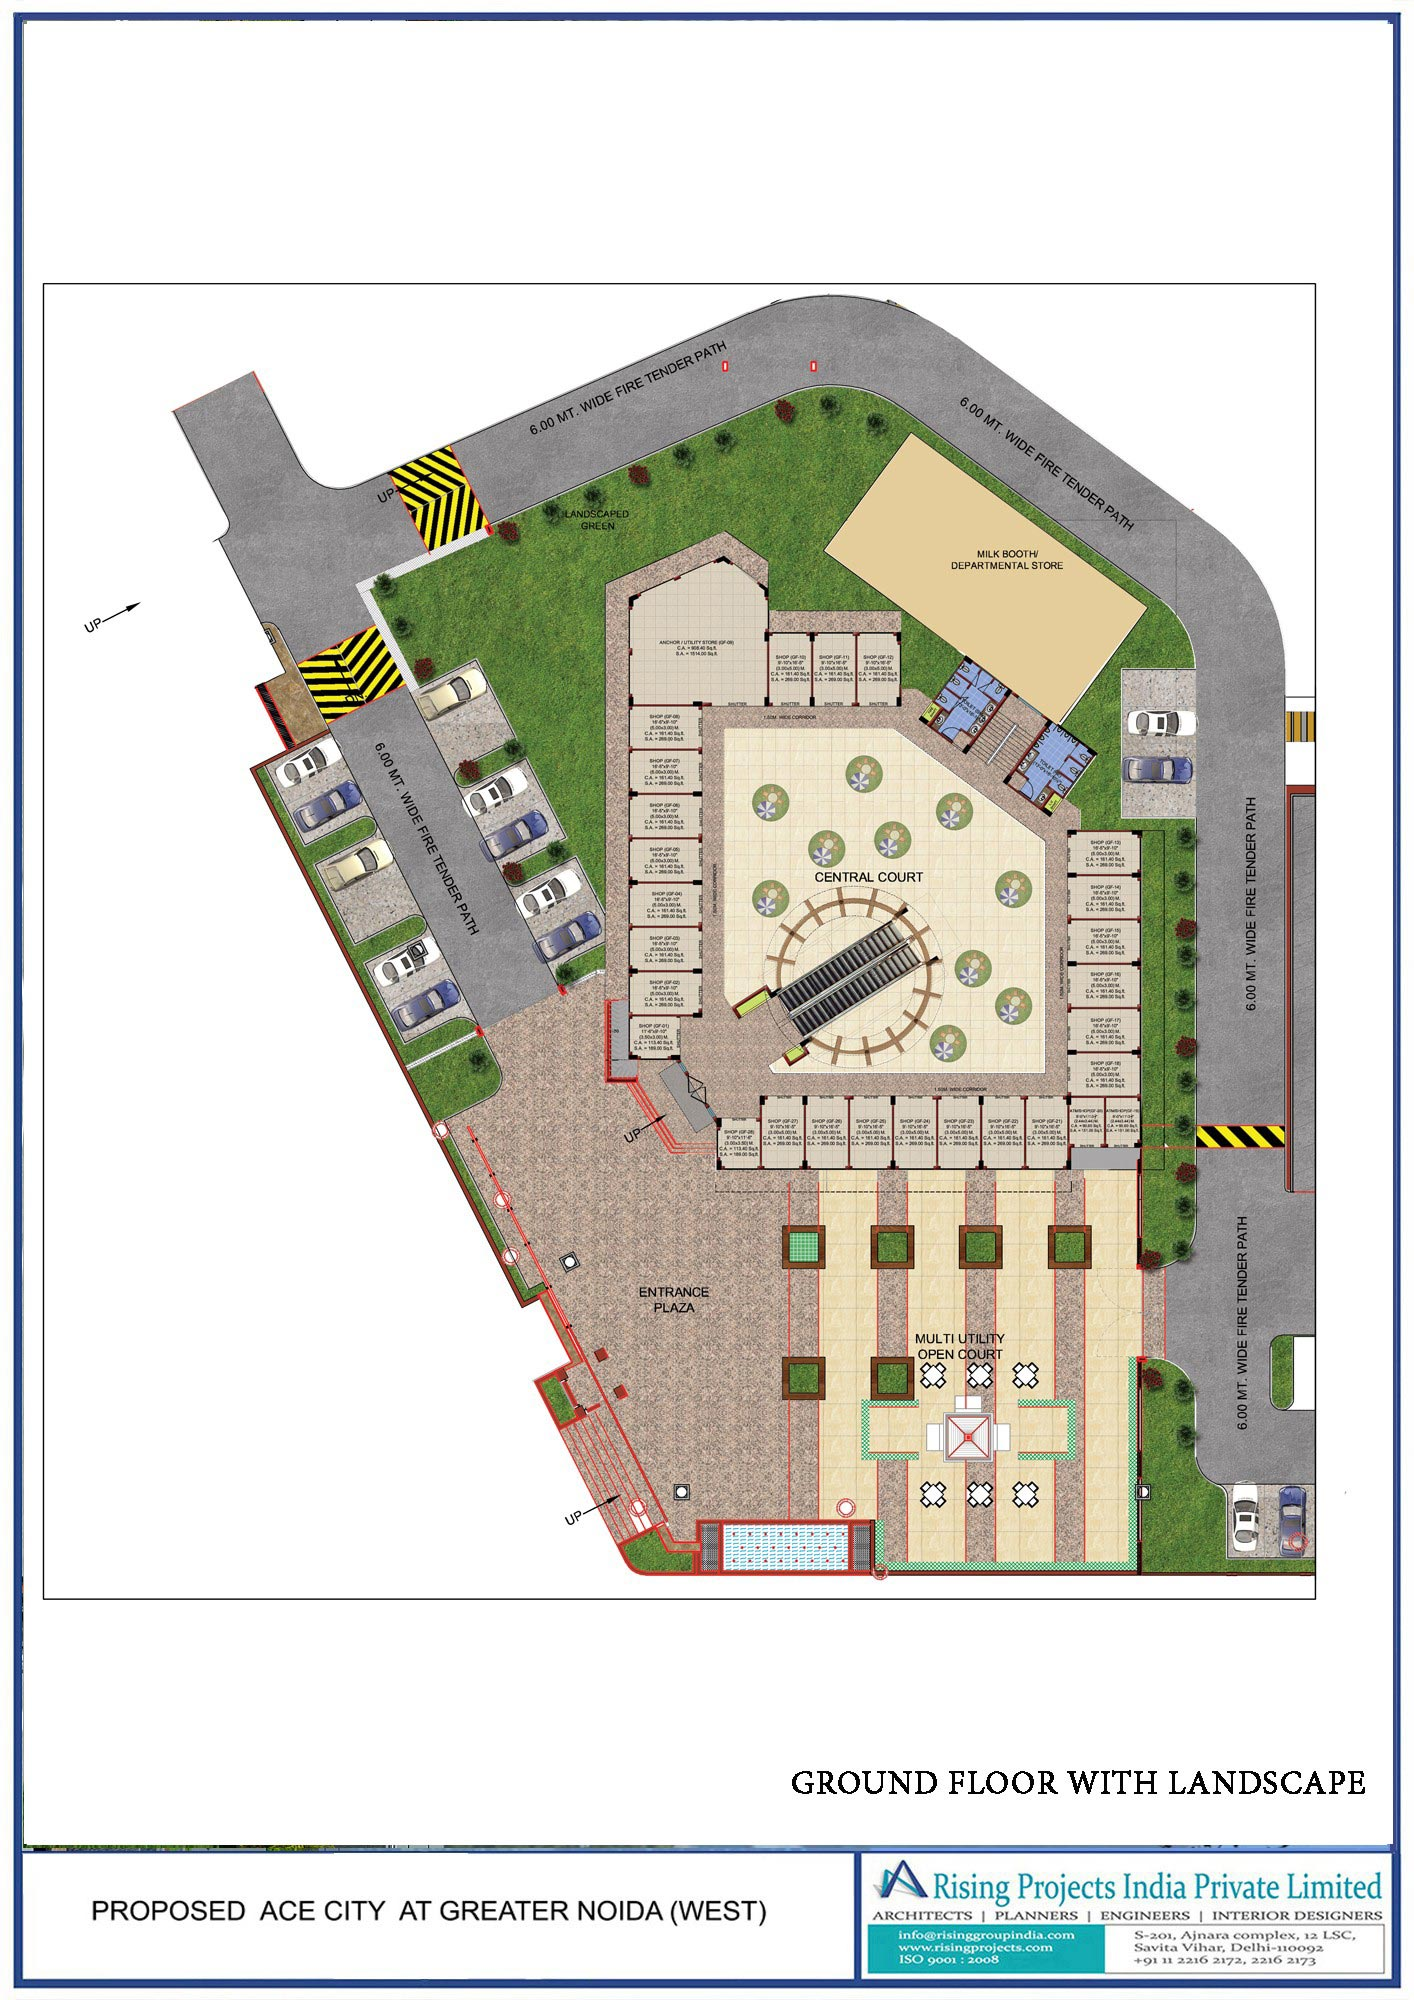 2/3 Bhk Residential Apartments site plan